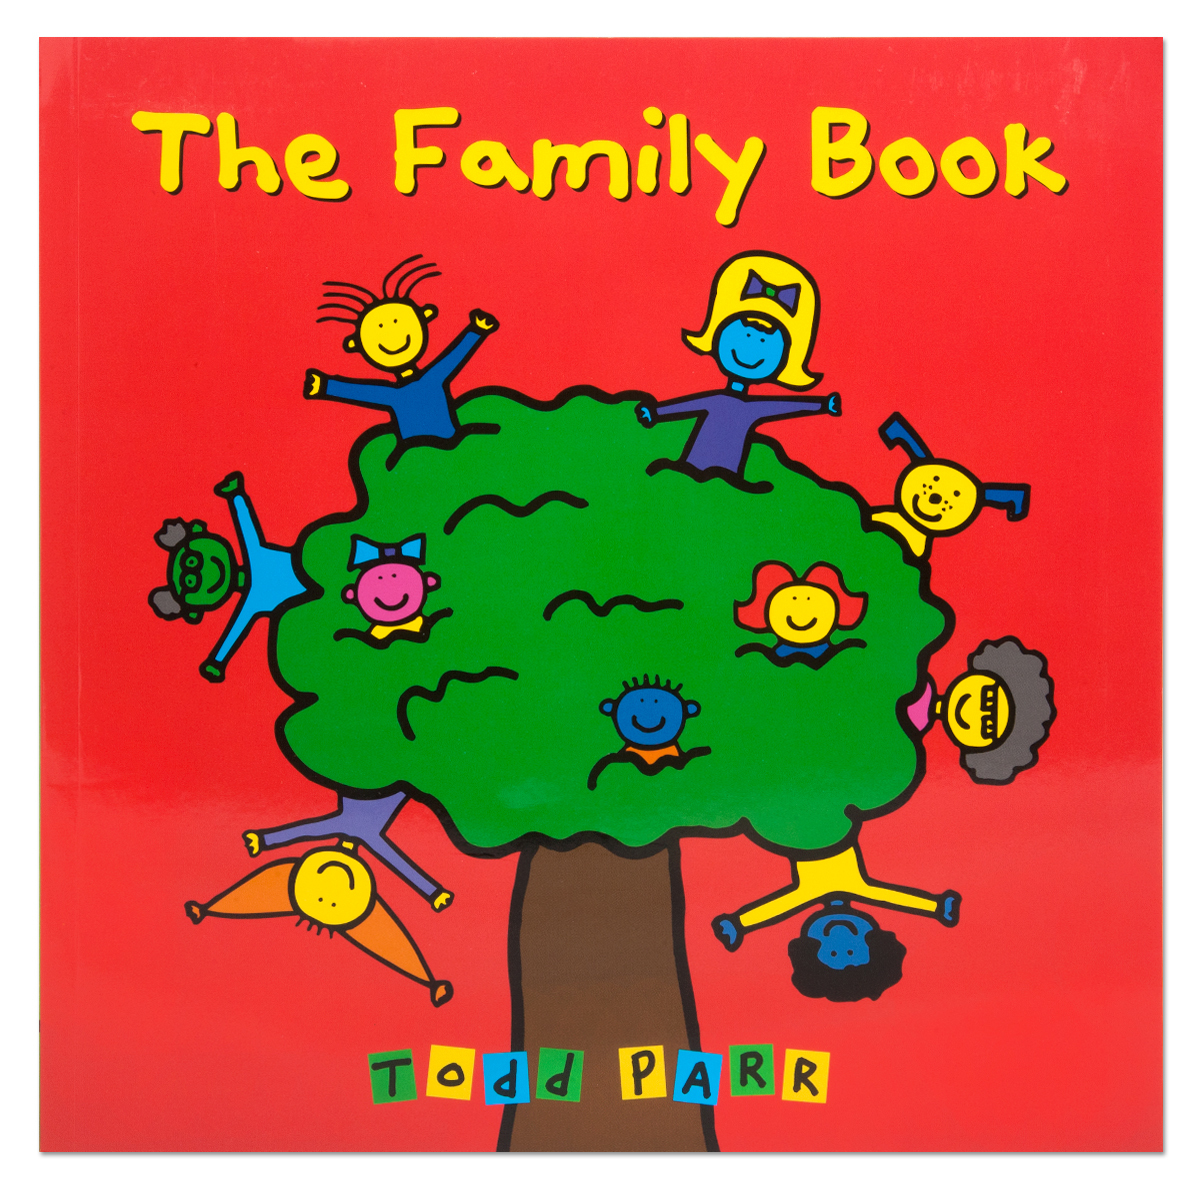 School Board Bans Kid S Book For Mention Of Families